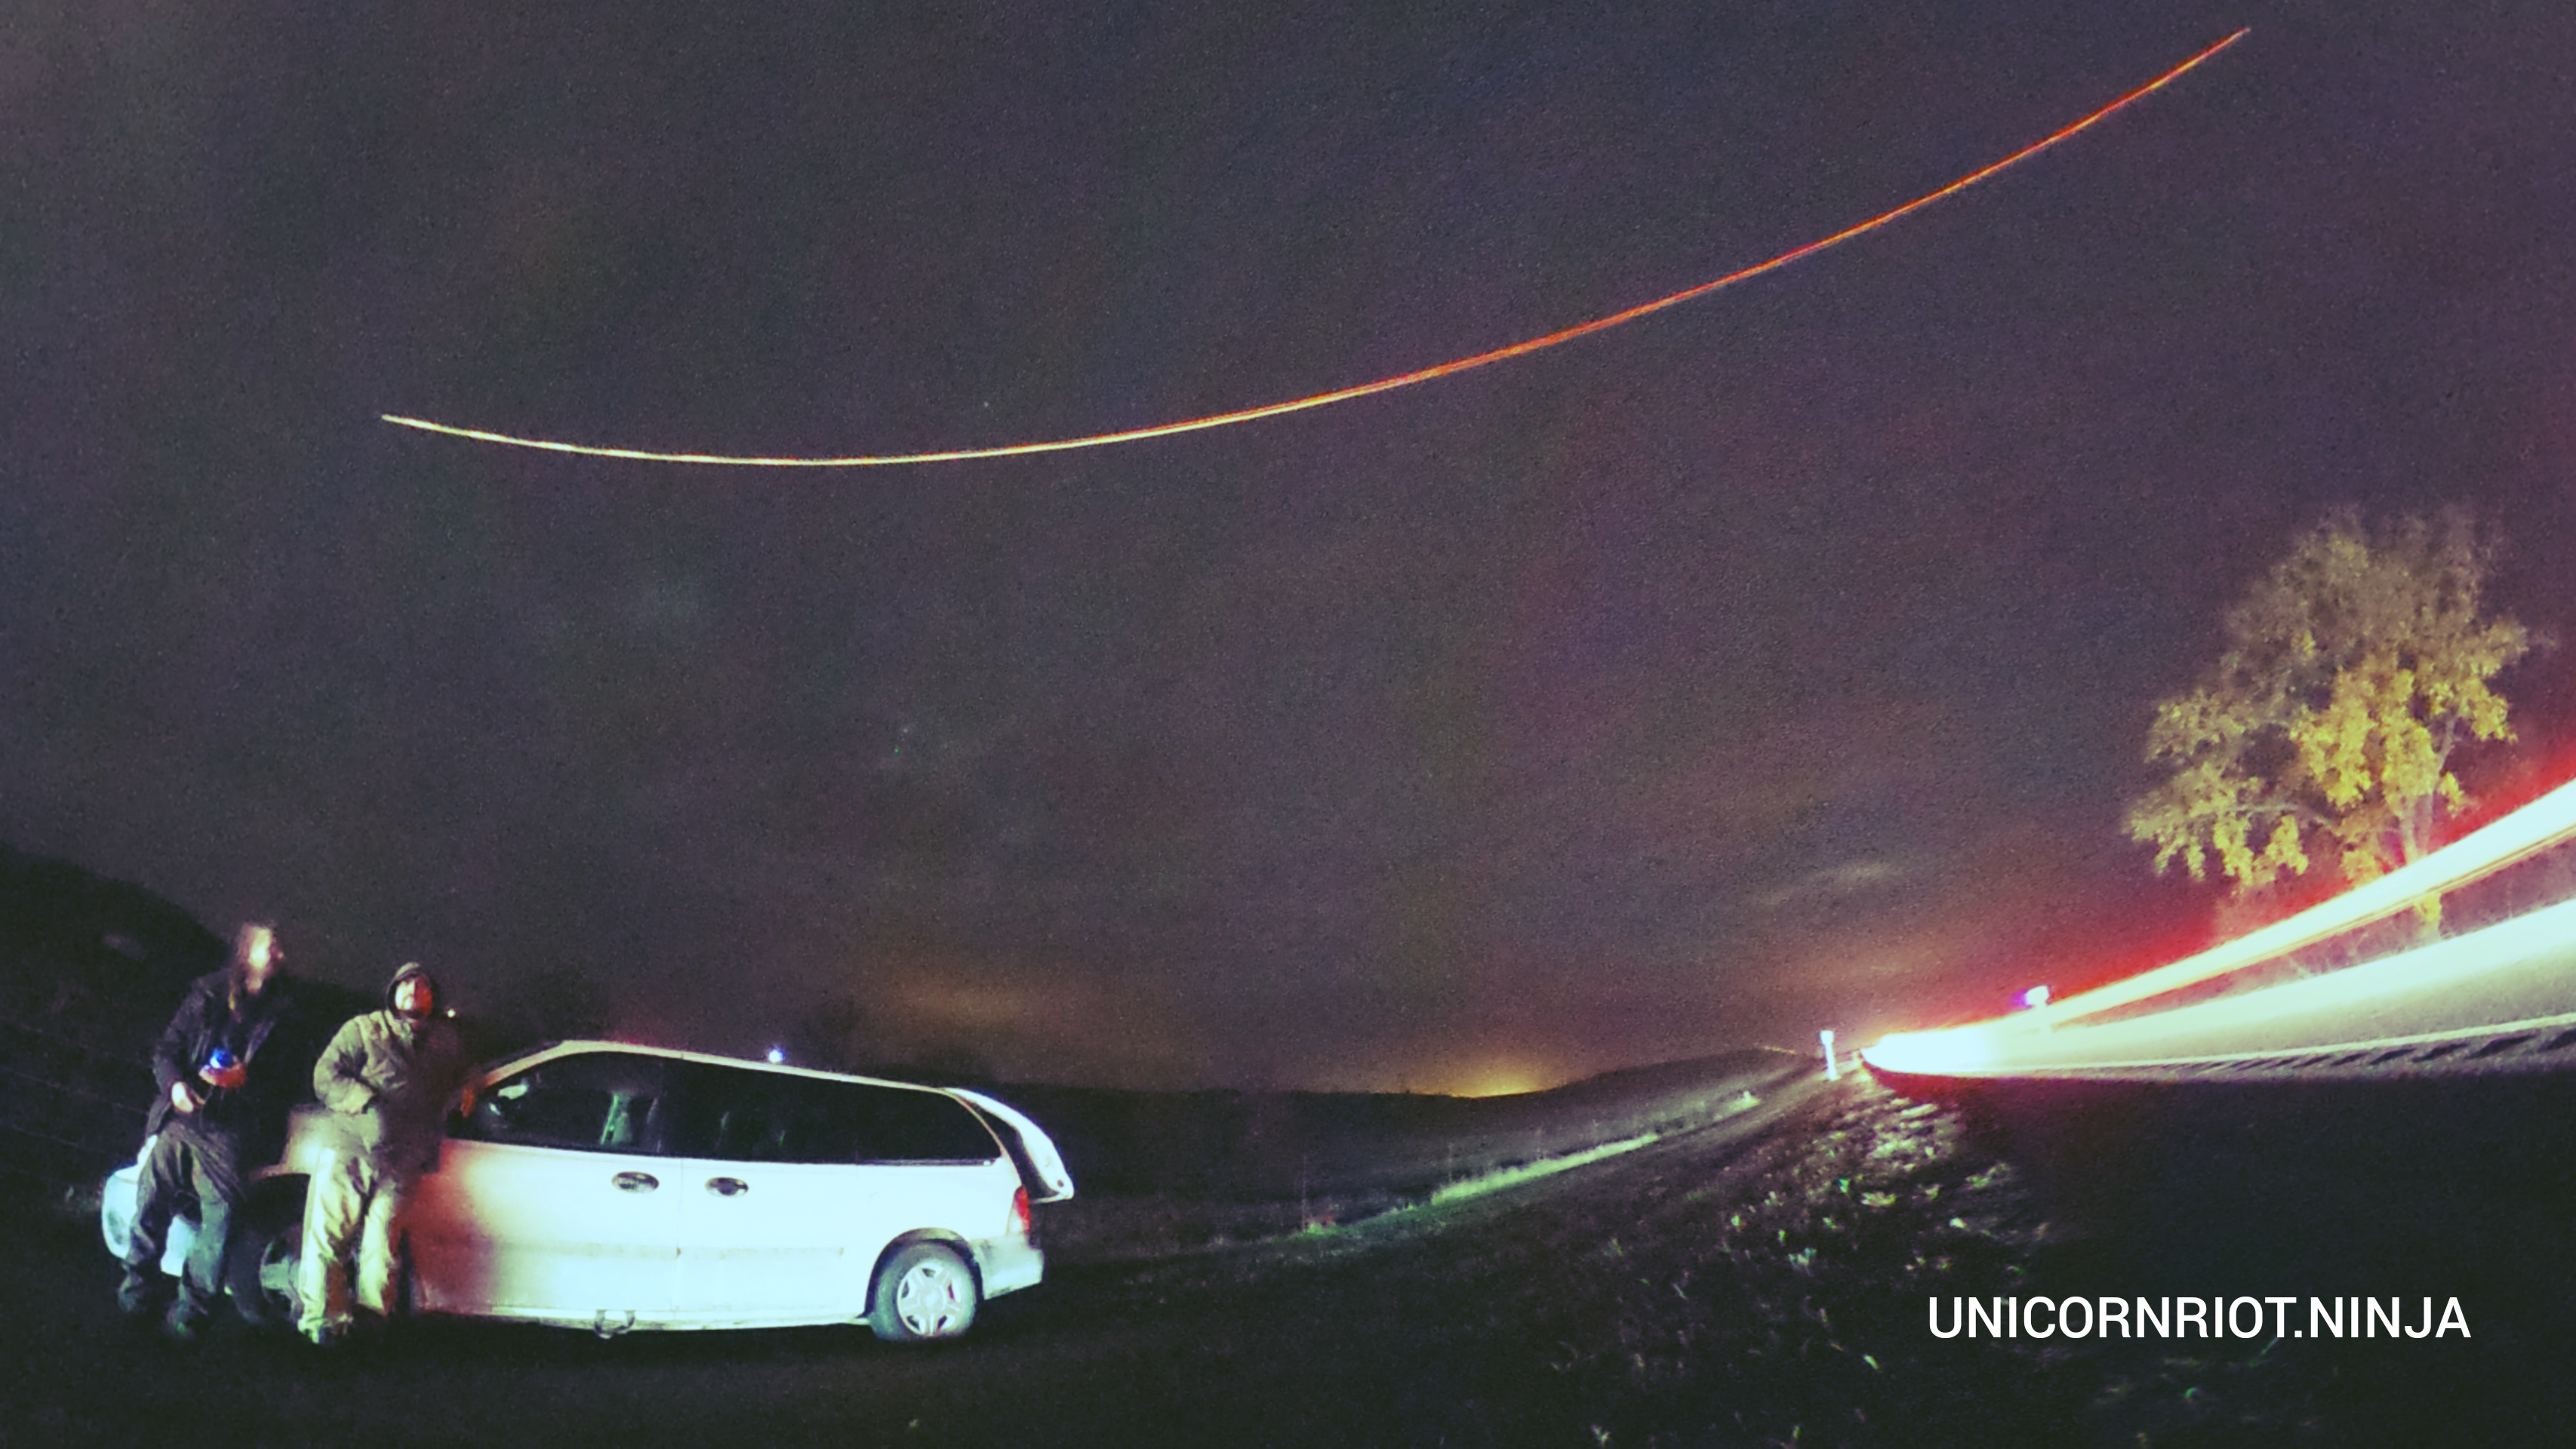 Documenting spy planes over Standing Rock